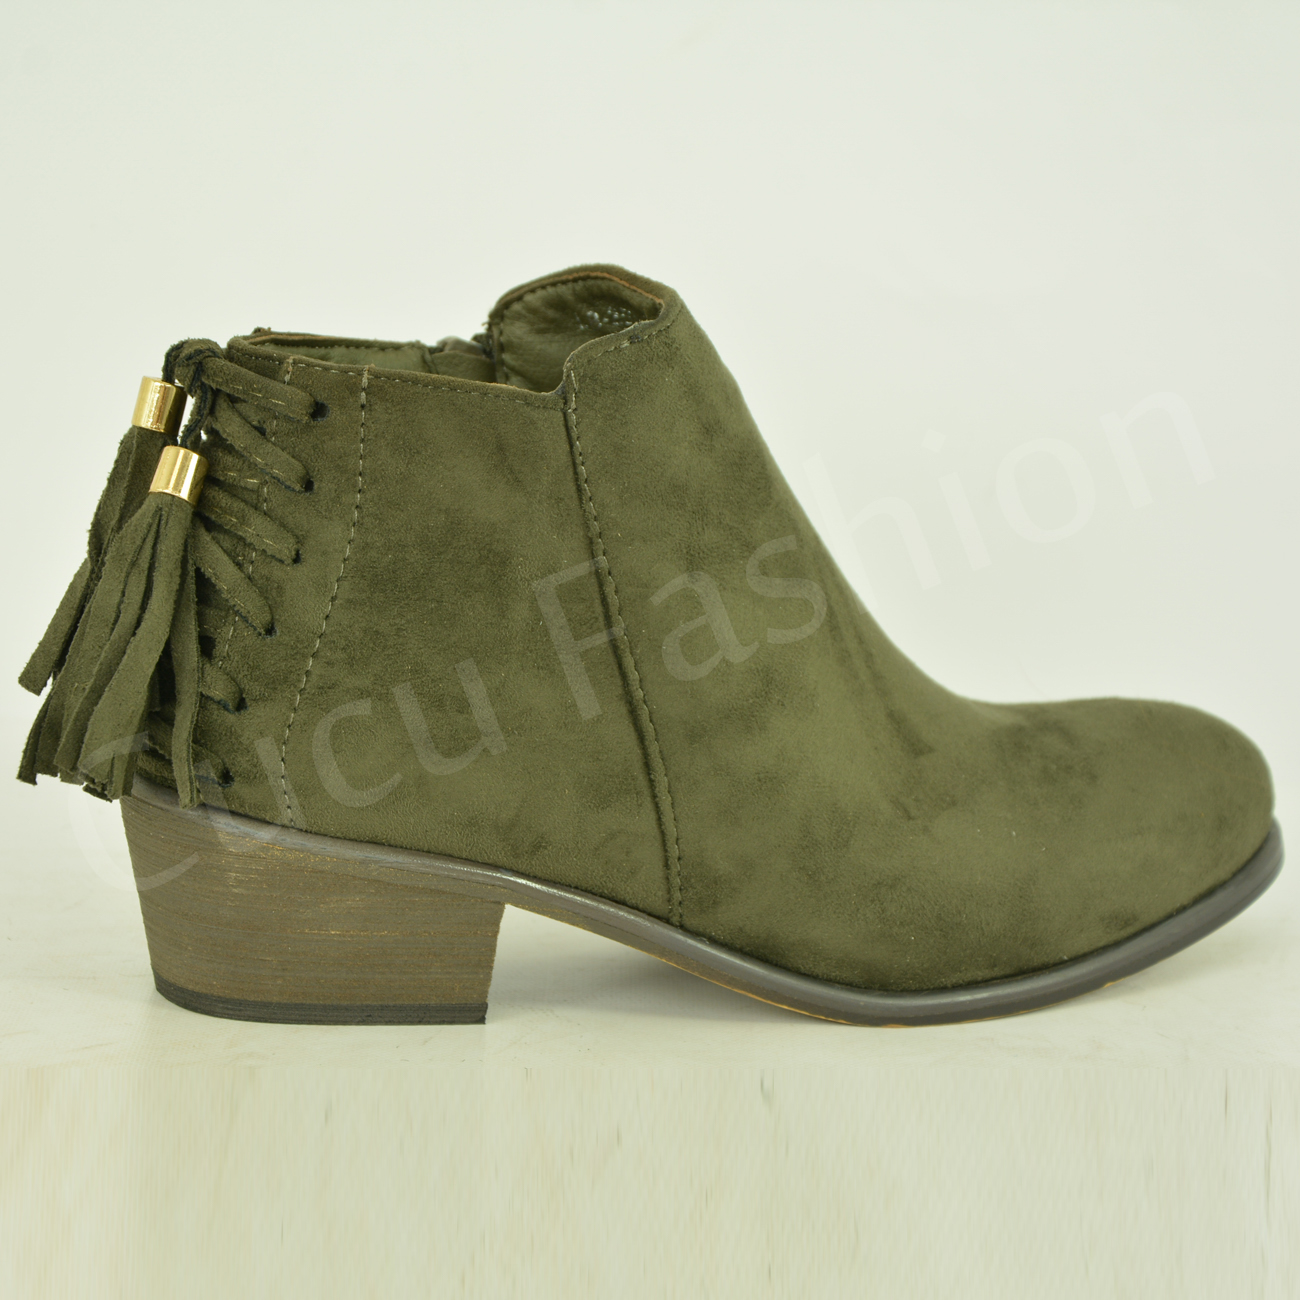 Shop for women's ankle boots at ASOS. Browse our stylish collection of flat and heeled booties, and find your staple pair.